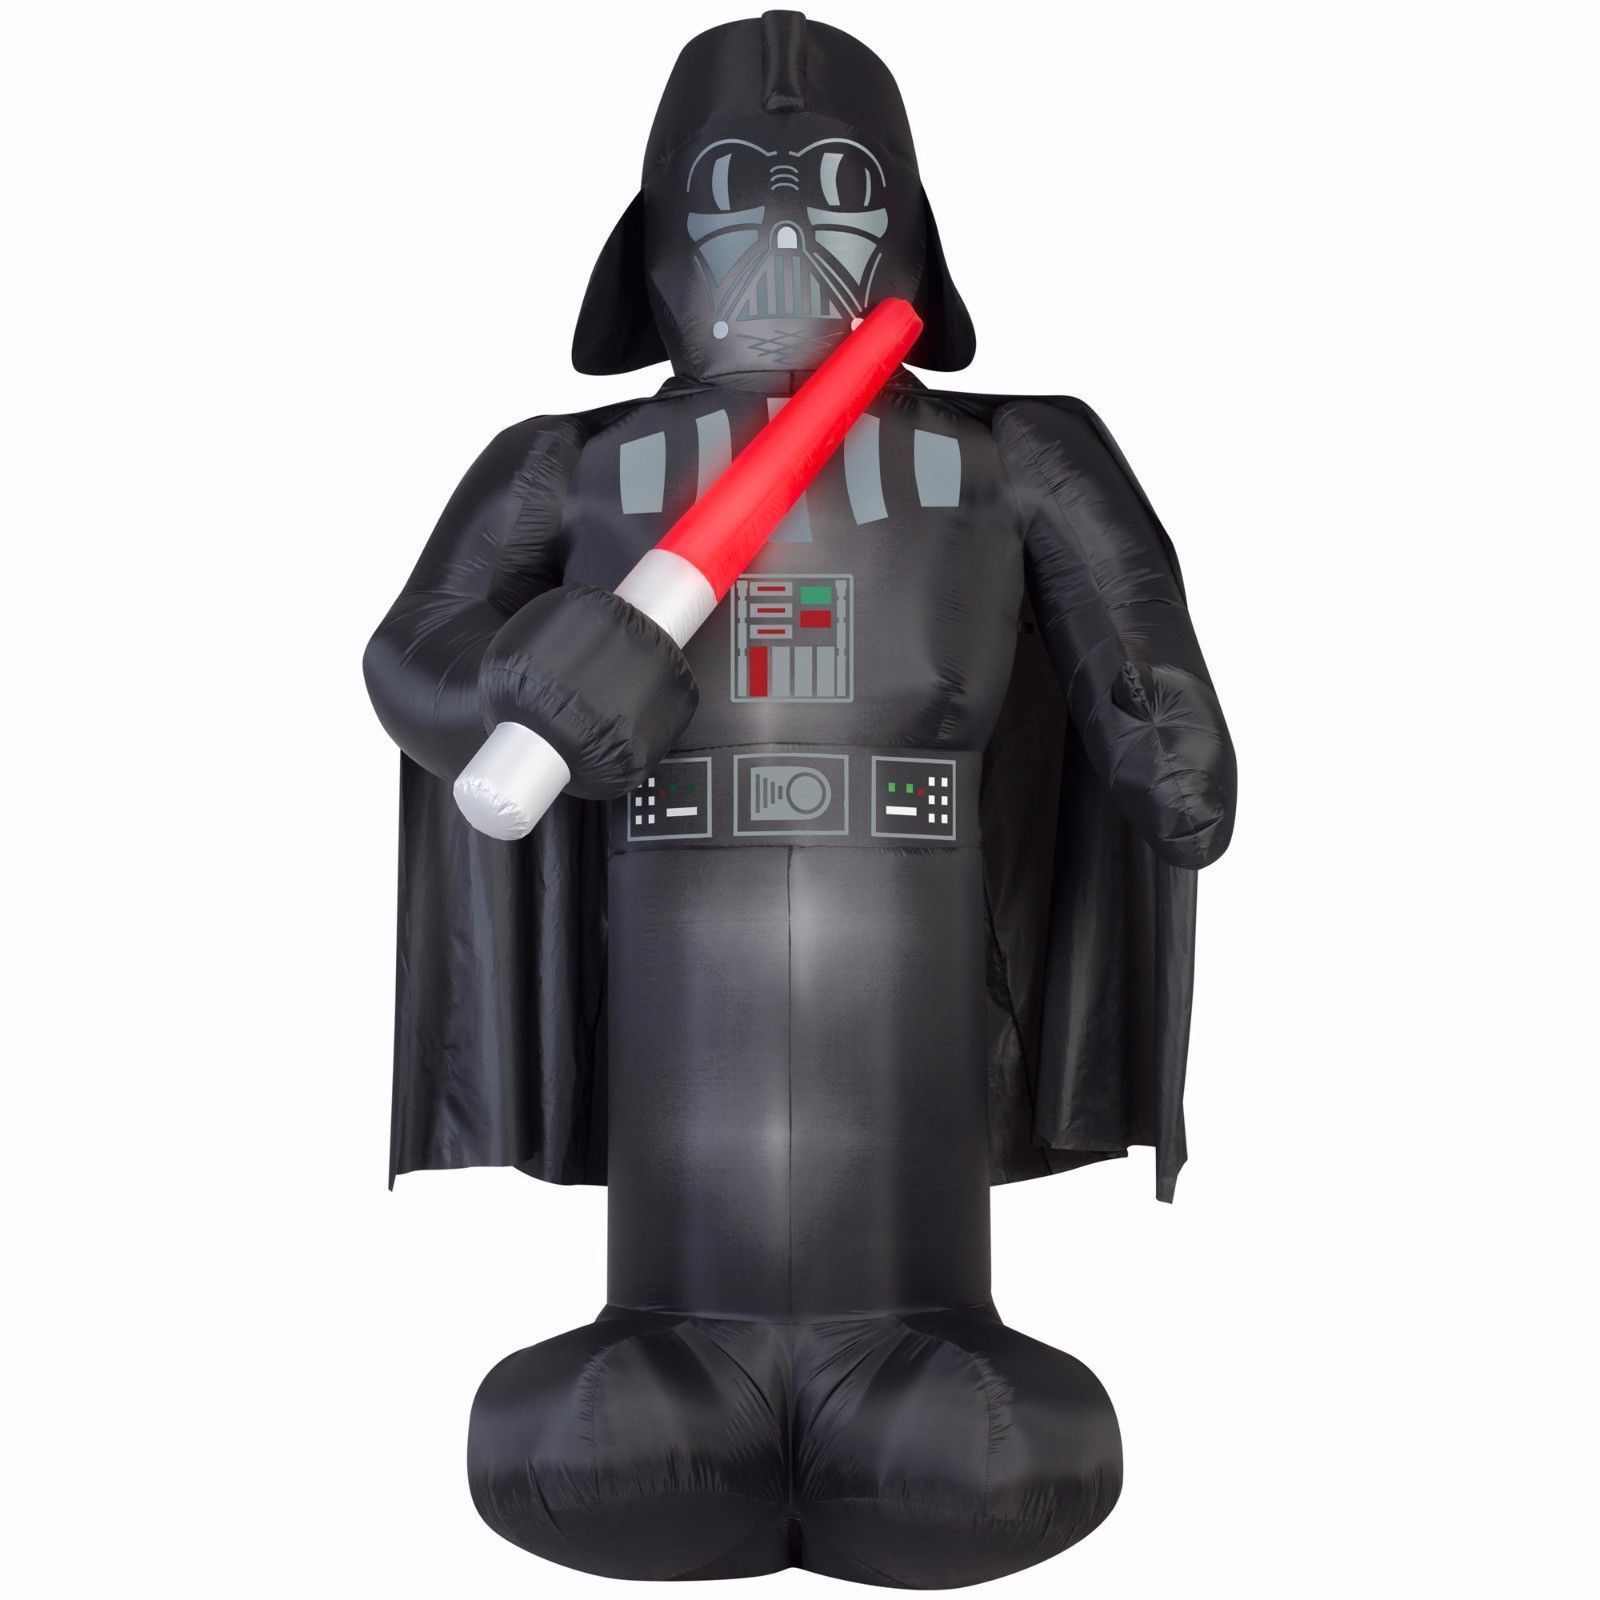 Star Wars Airblown Inflatable Darth Vader with Light Saber 10 FT Christmas